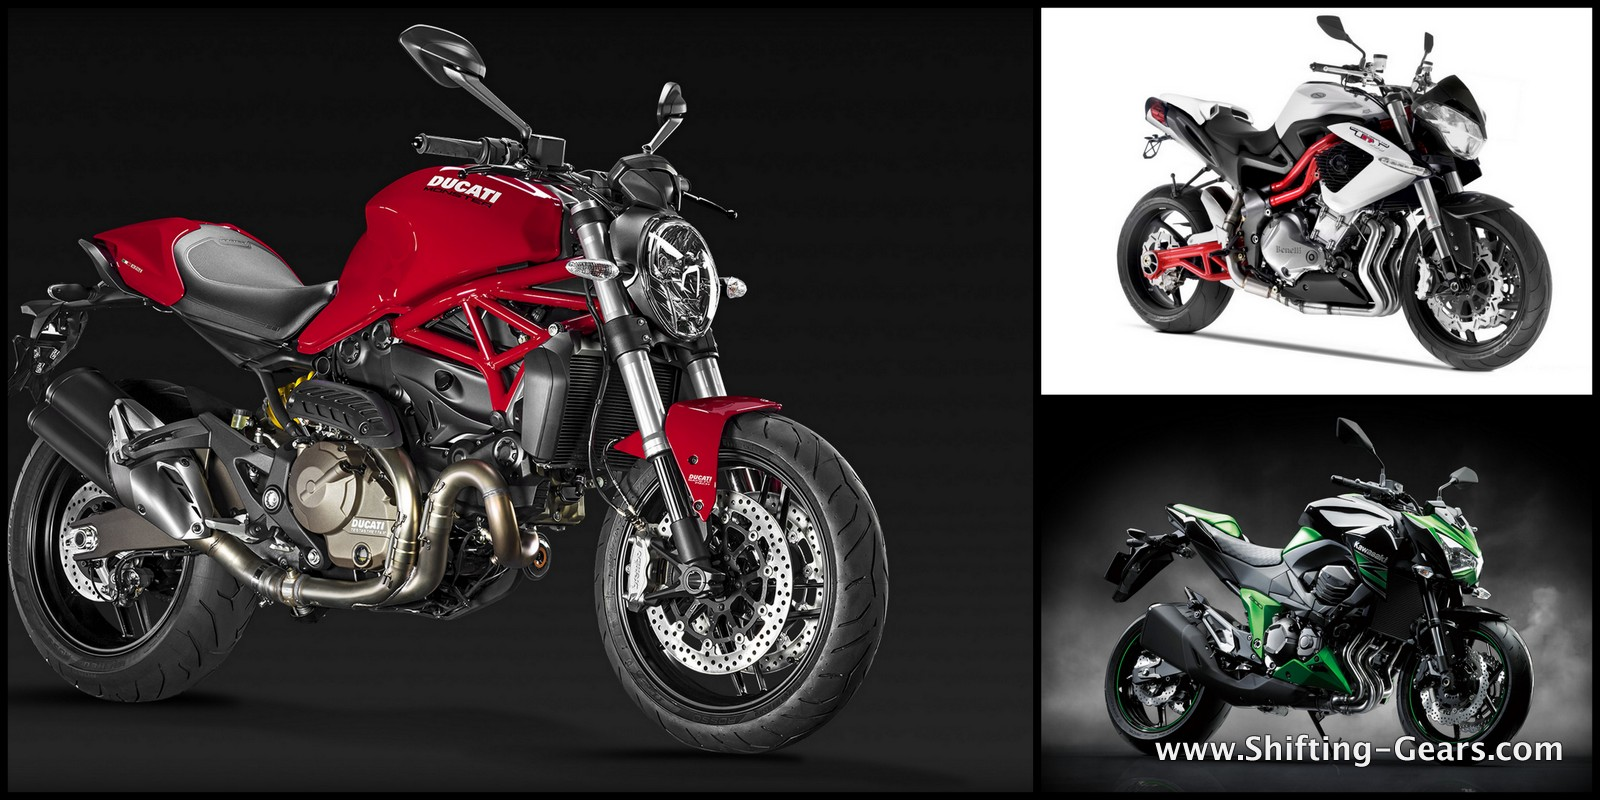 Ducati Monster 821 Vs. Kawasaki Z800 Vs. Benelli TNT 899